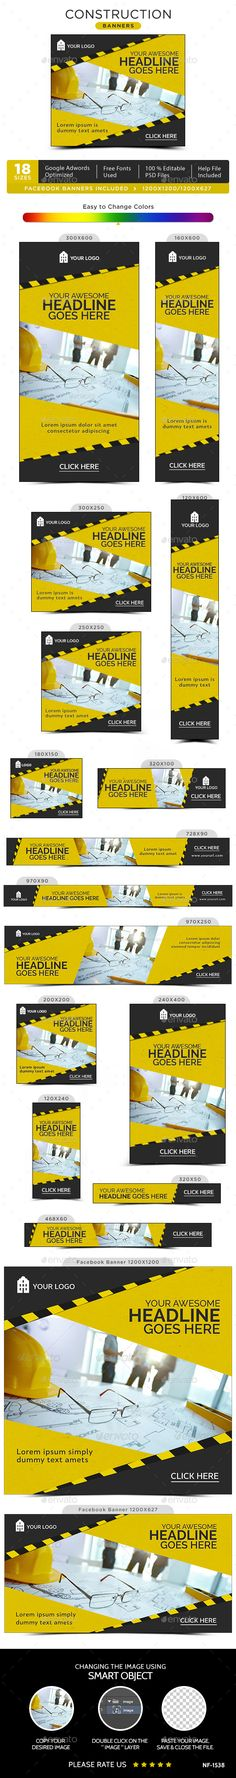 Construction Banners - Banners & Ads Web Elements Download here : https://graphicriver.net/item/construction-banners/17892881?s_rank=190&ref=Al-fatih